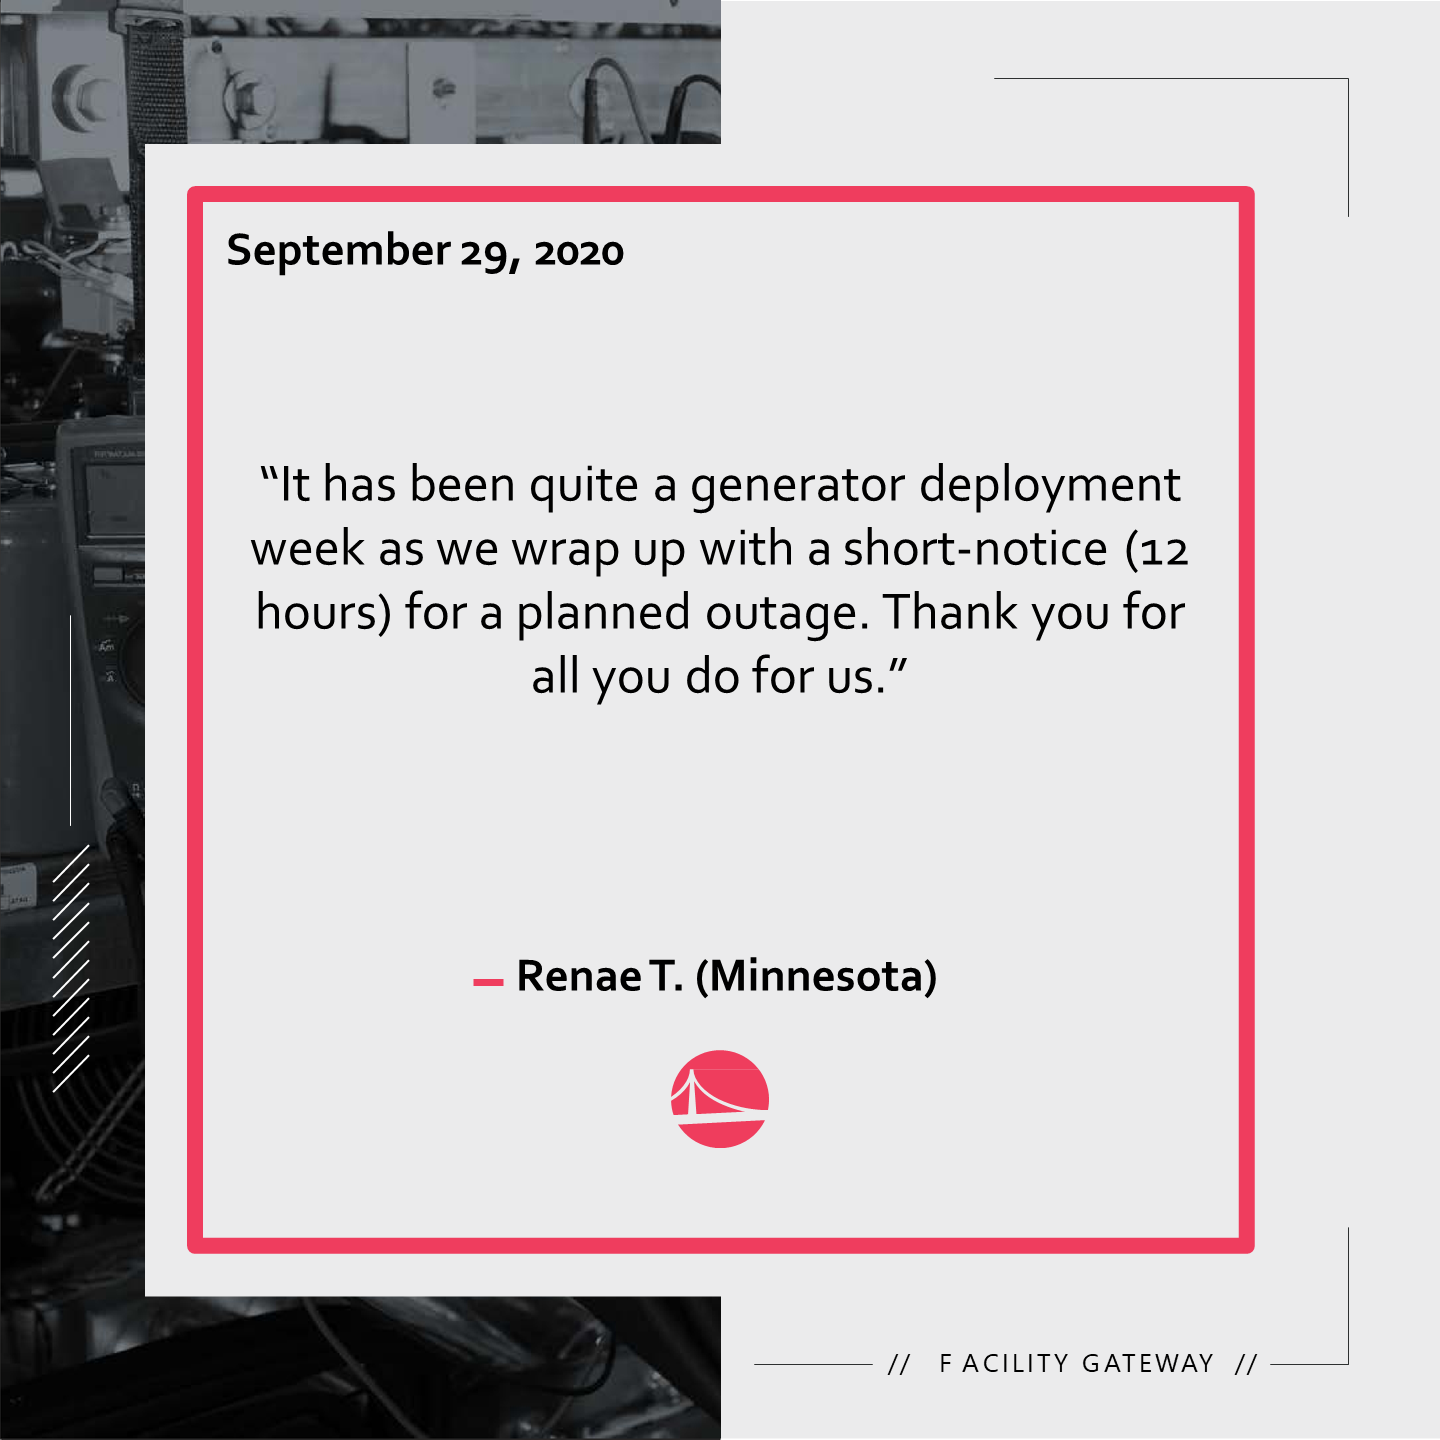 A customer review from Iowa regarding the great services received by one of our team members.